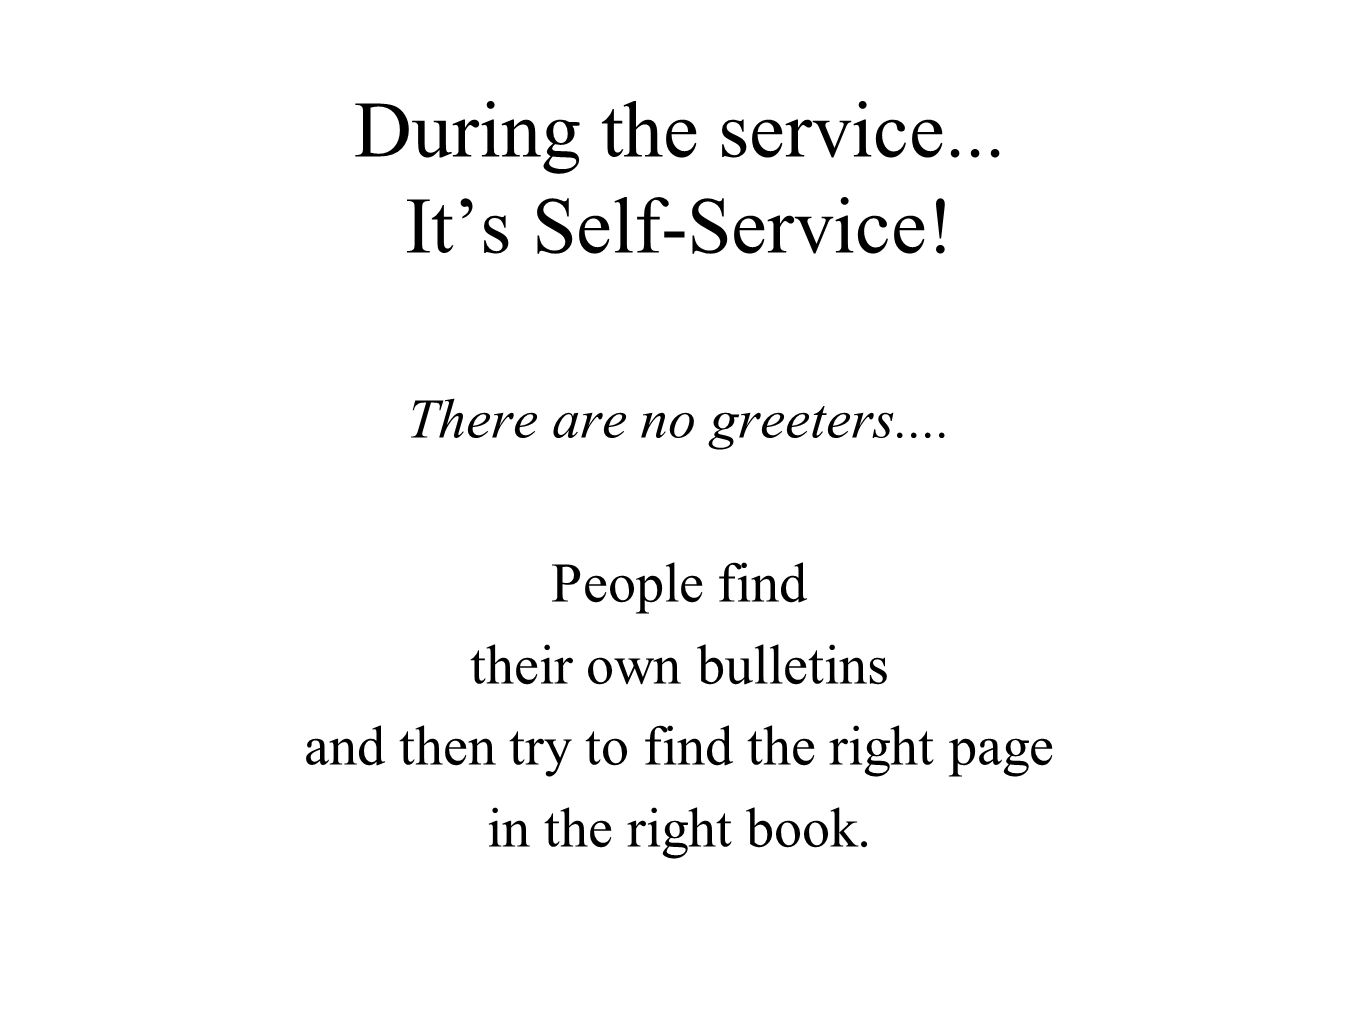 During the service...It's Self-Service. There are no greeters....